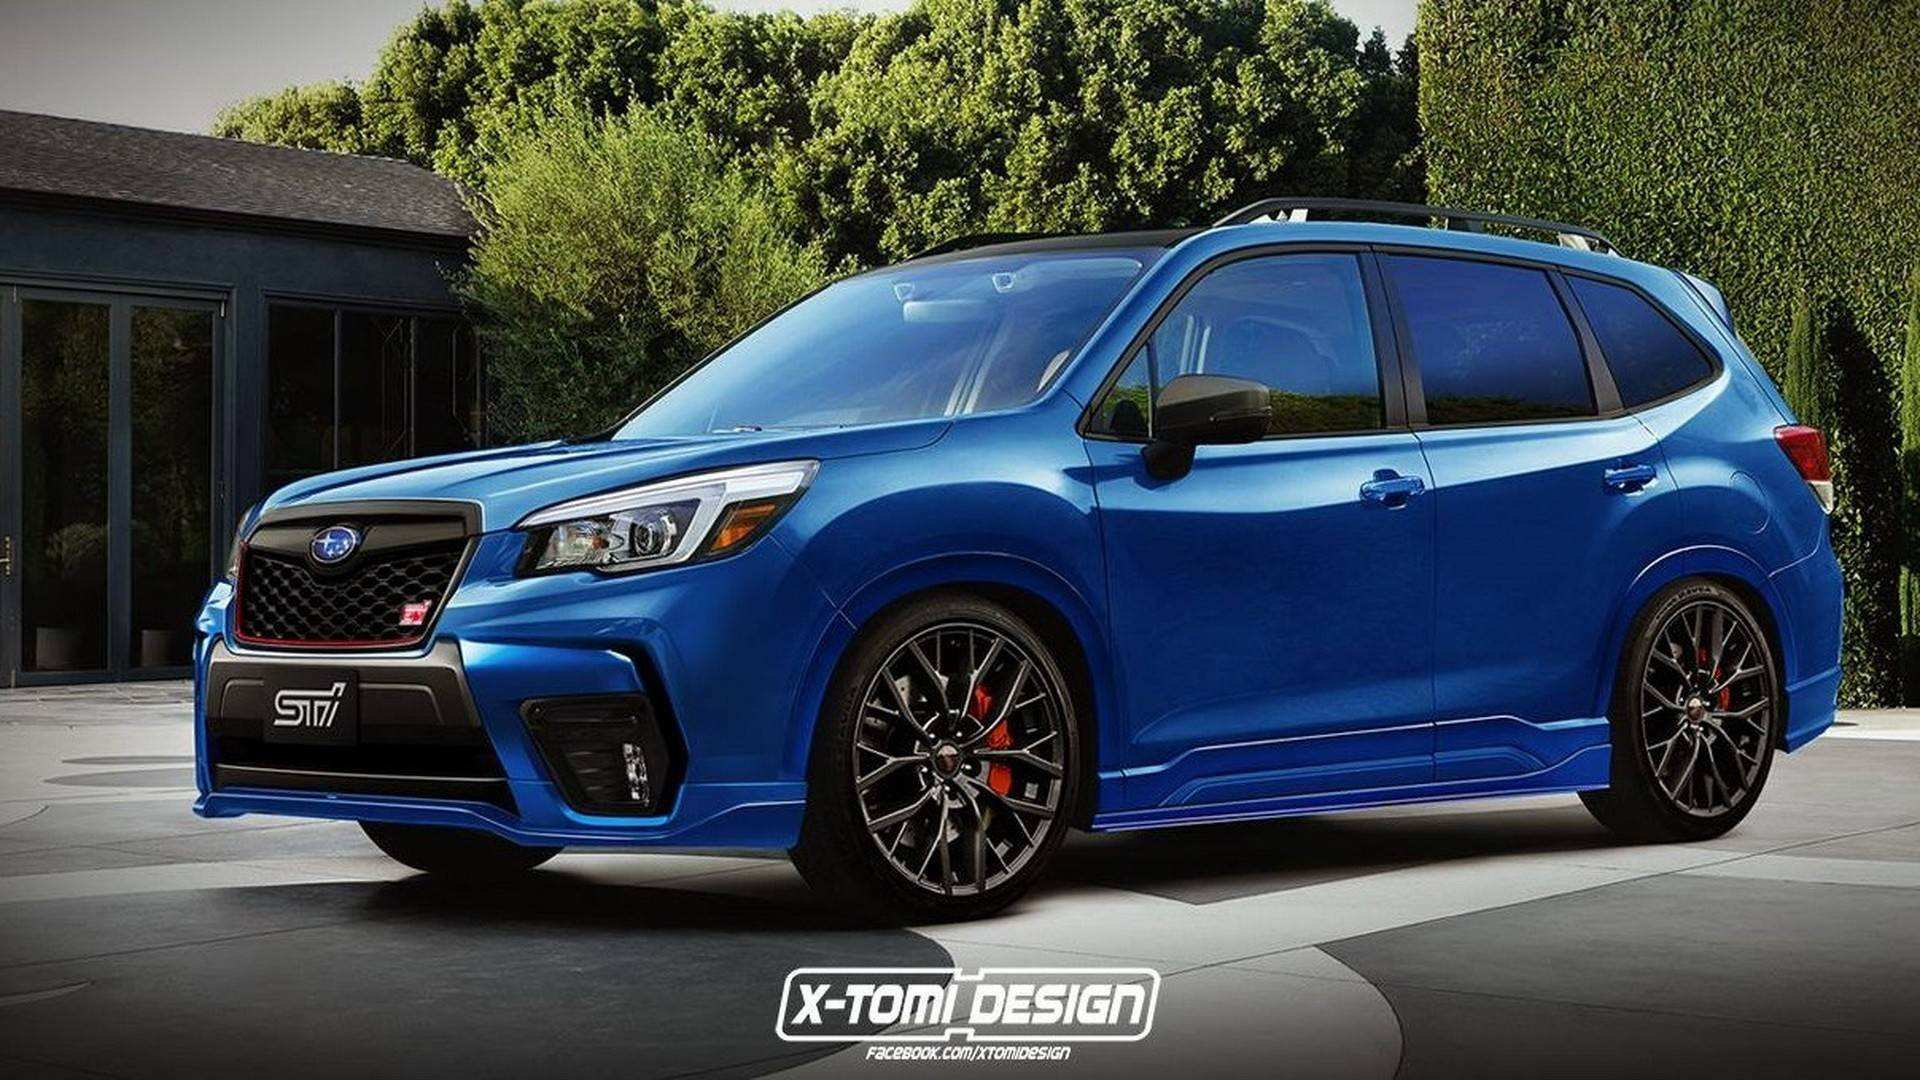 16 All New Subaru Plans For 2019 Concept Redesign And Review Exterior and Interior by Subaru Plans For 2019 Concept Redesign And Review